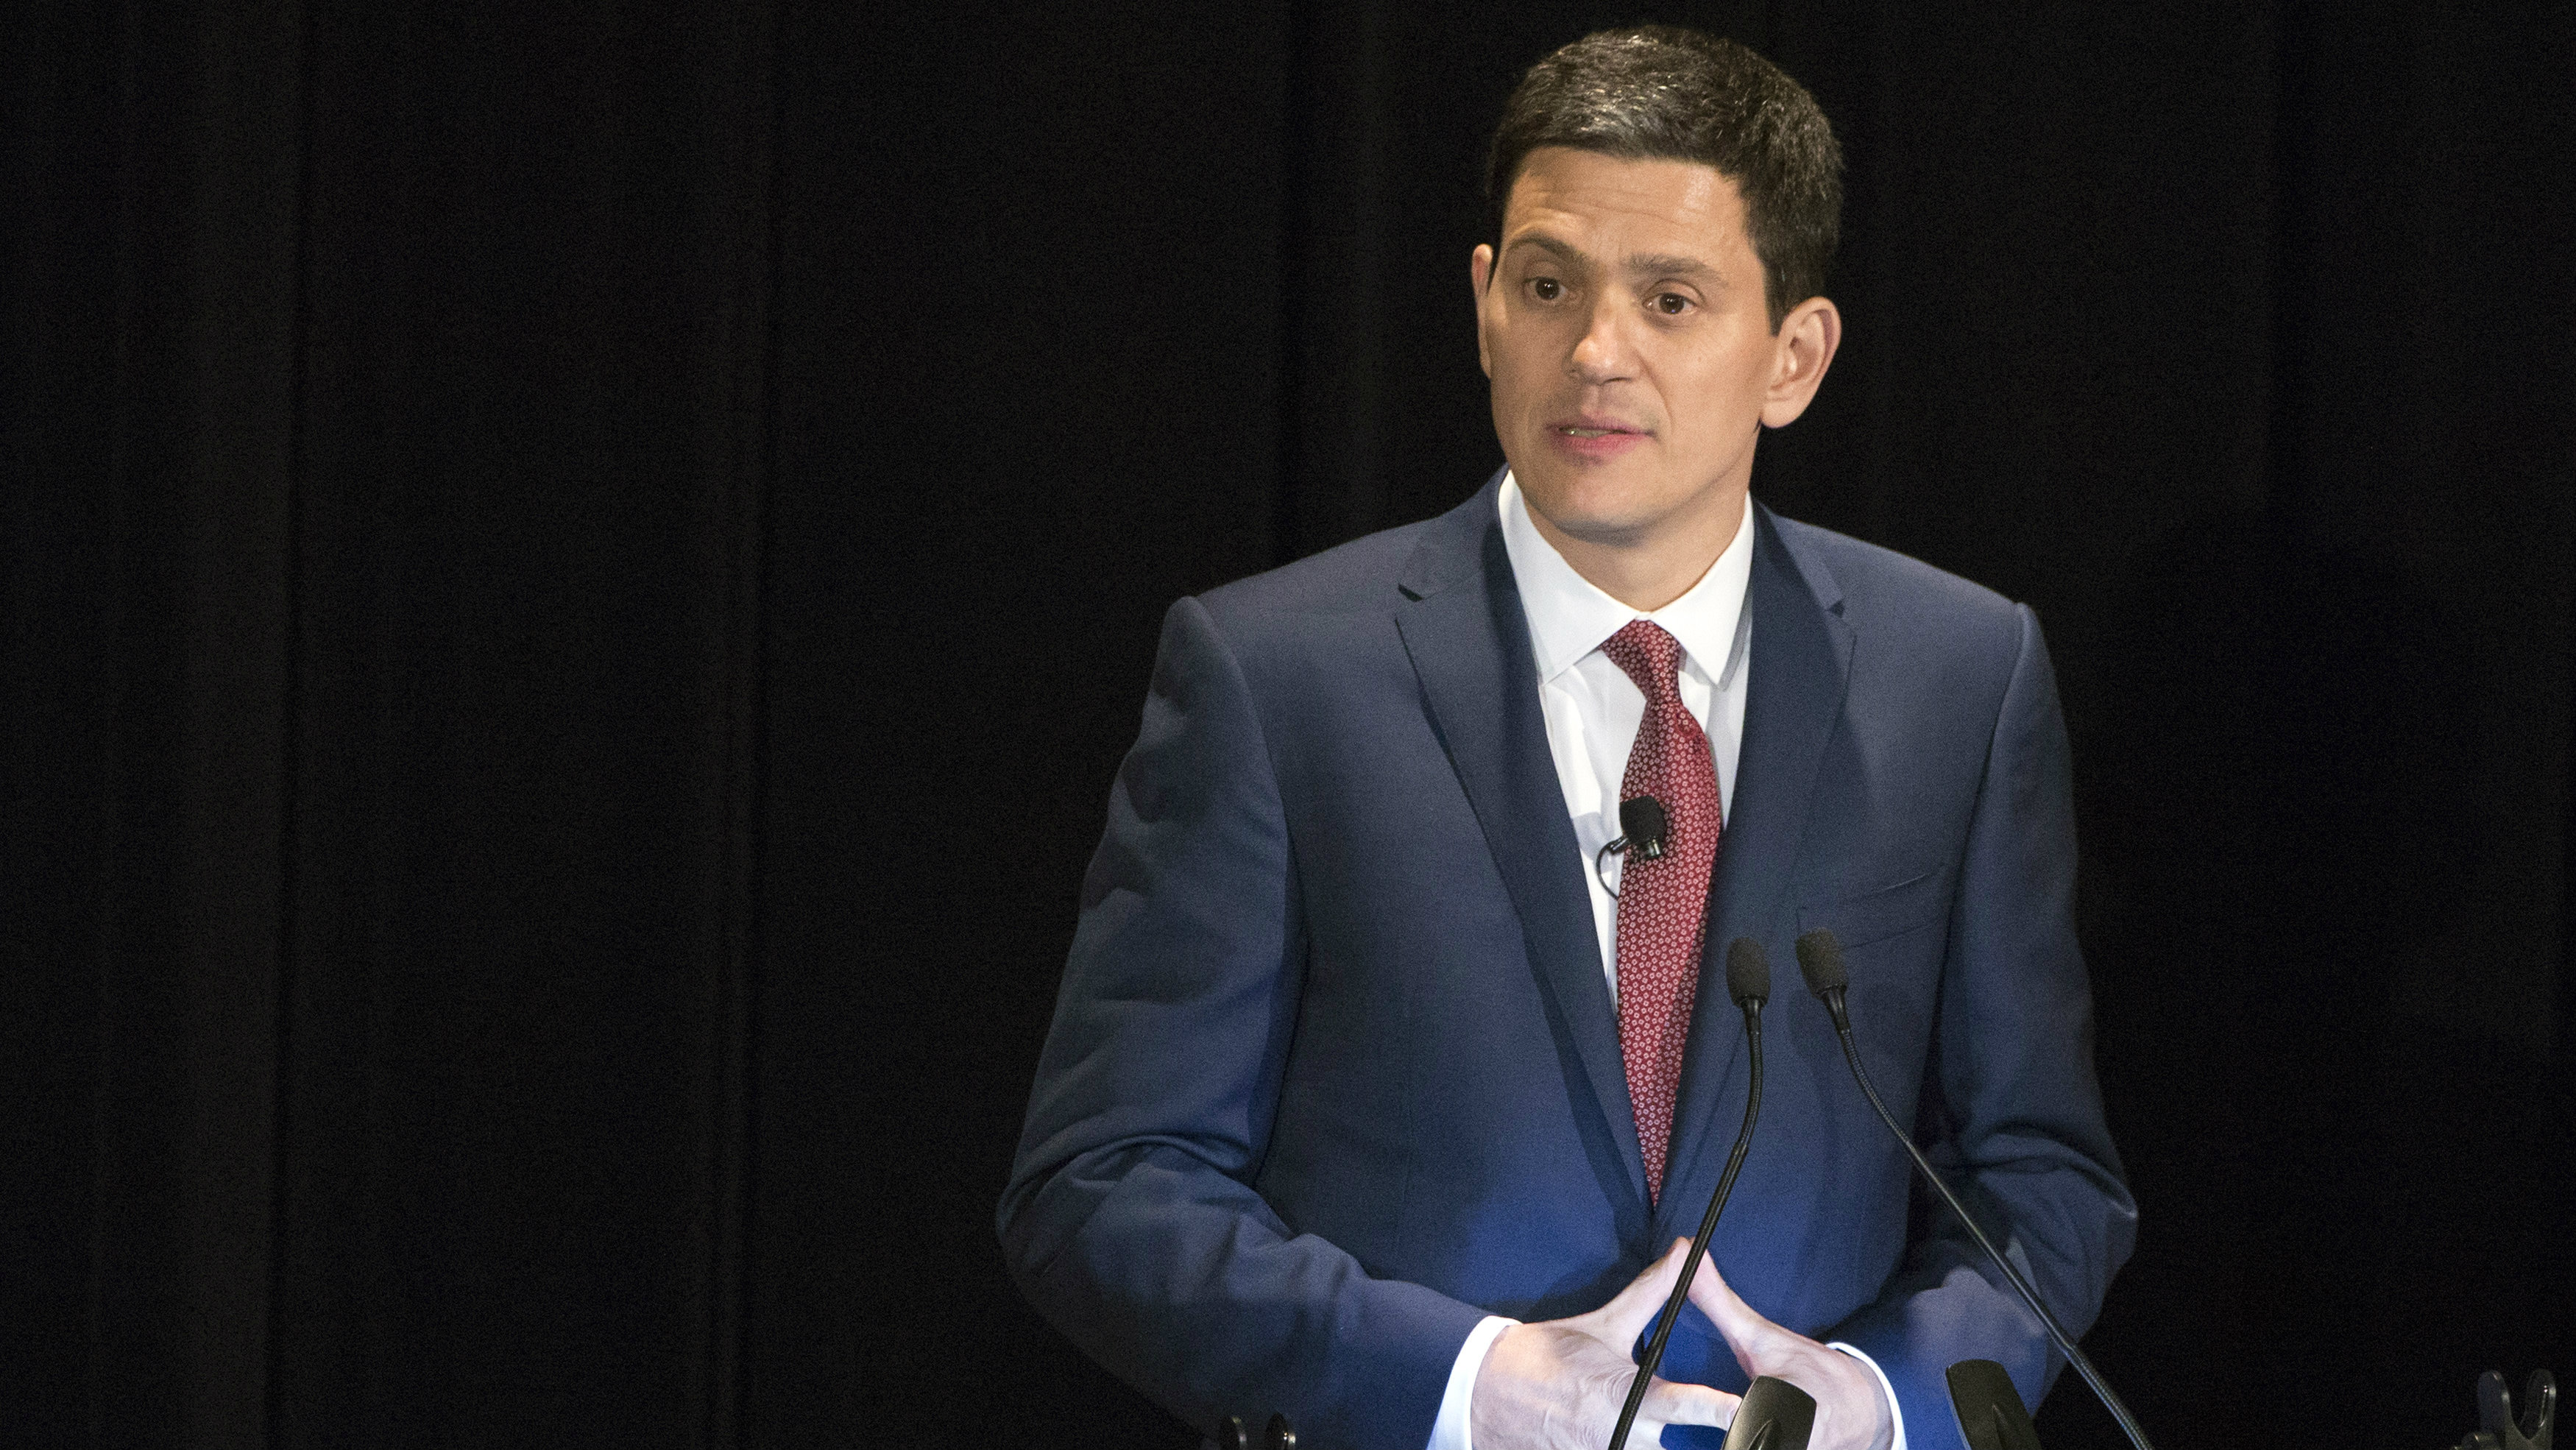 RC President and CEO David Miliband speaks onstage at the Annual Freedom Award Benefit Event hosted by the International Rescue Committee at the Waldorf-Astoria in New York November 6, 2013.